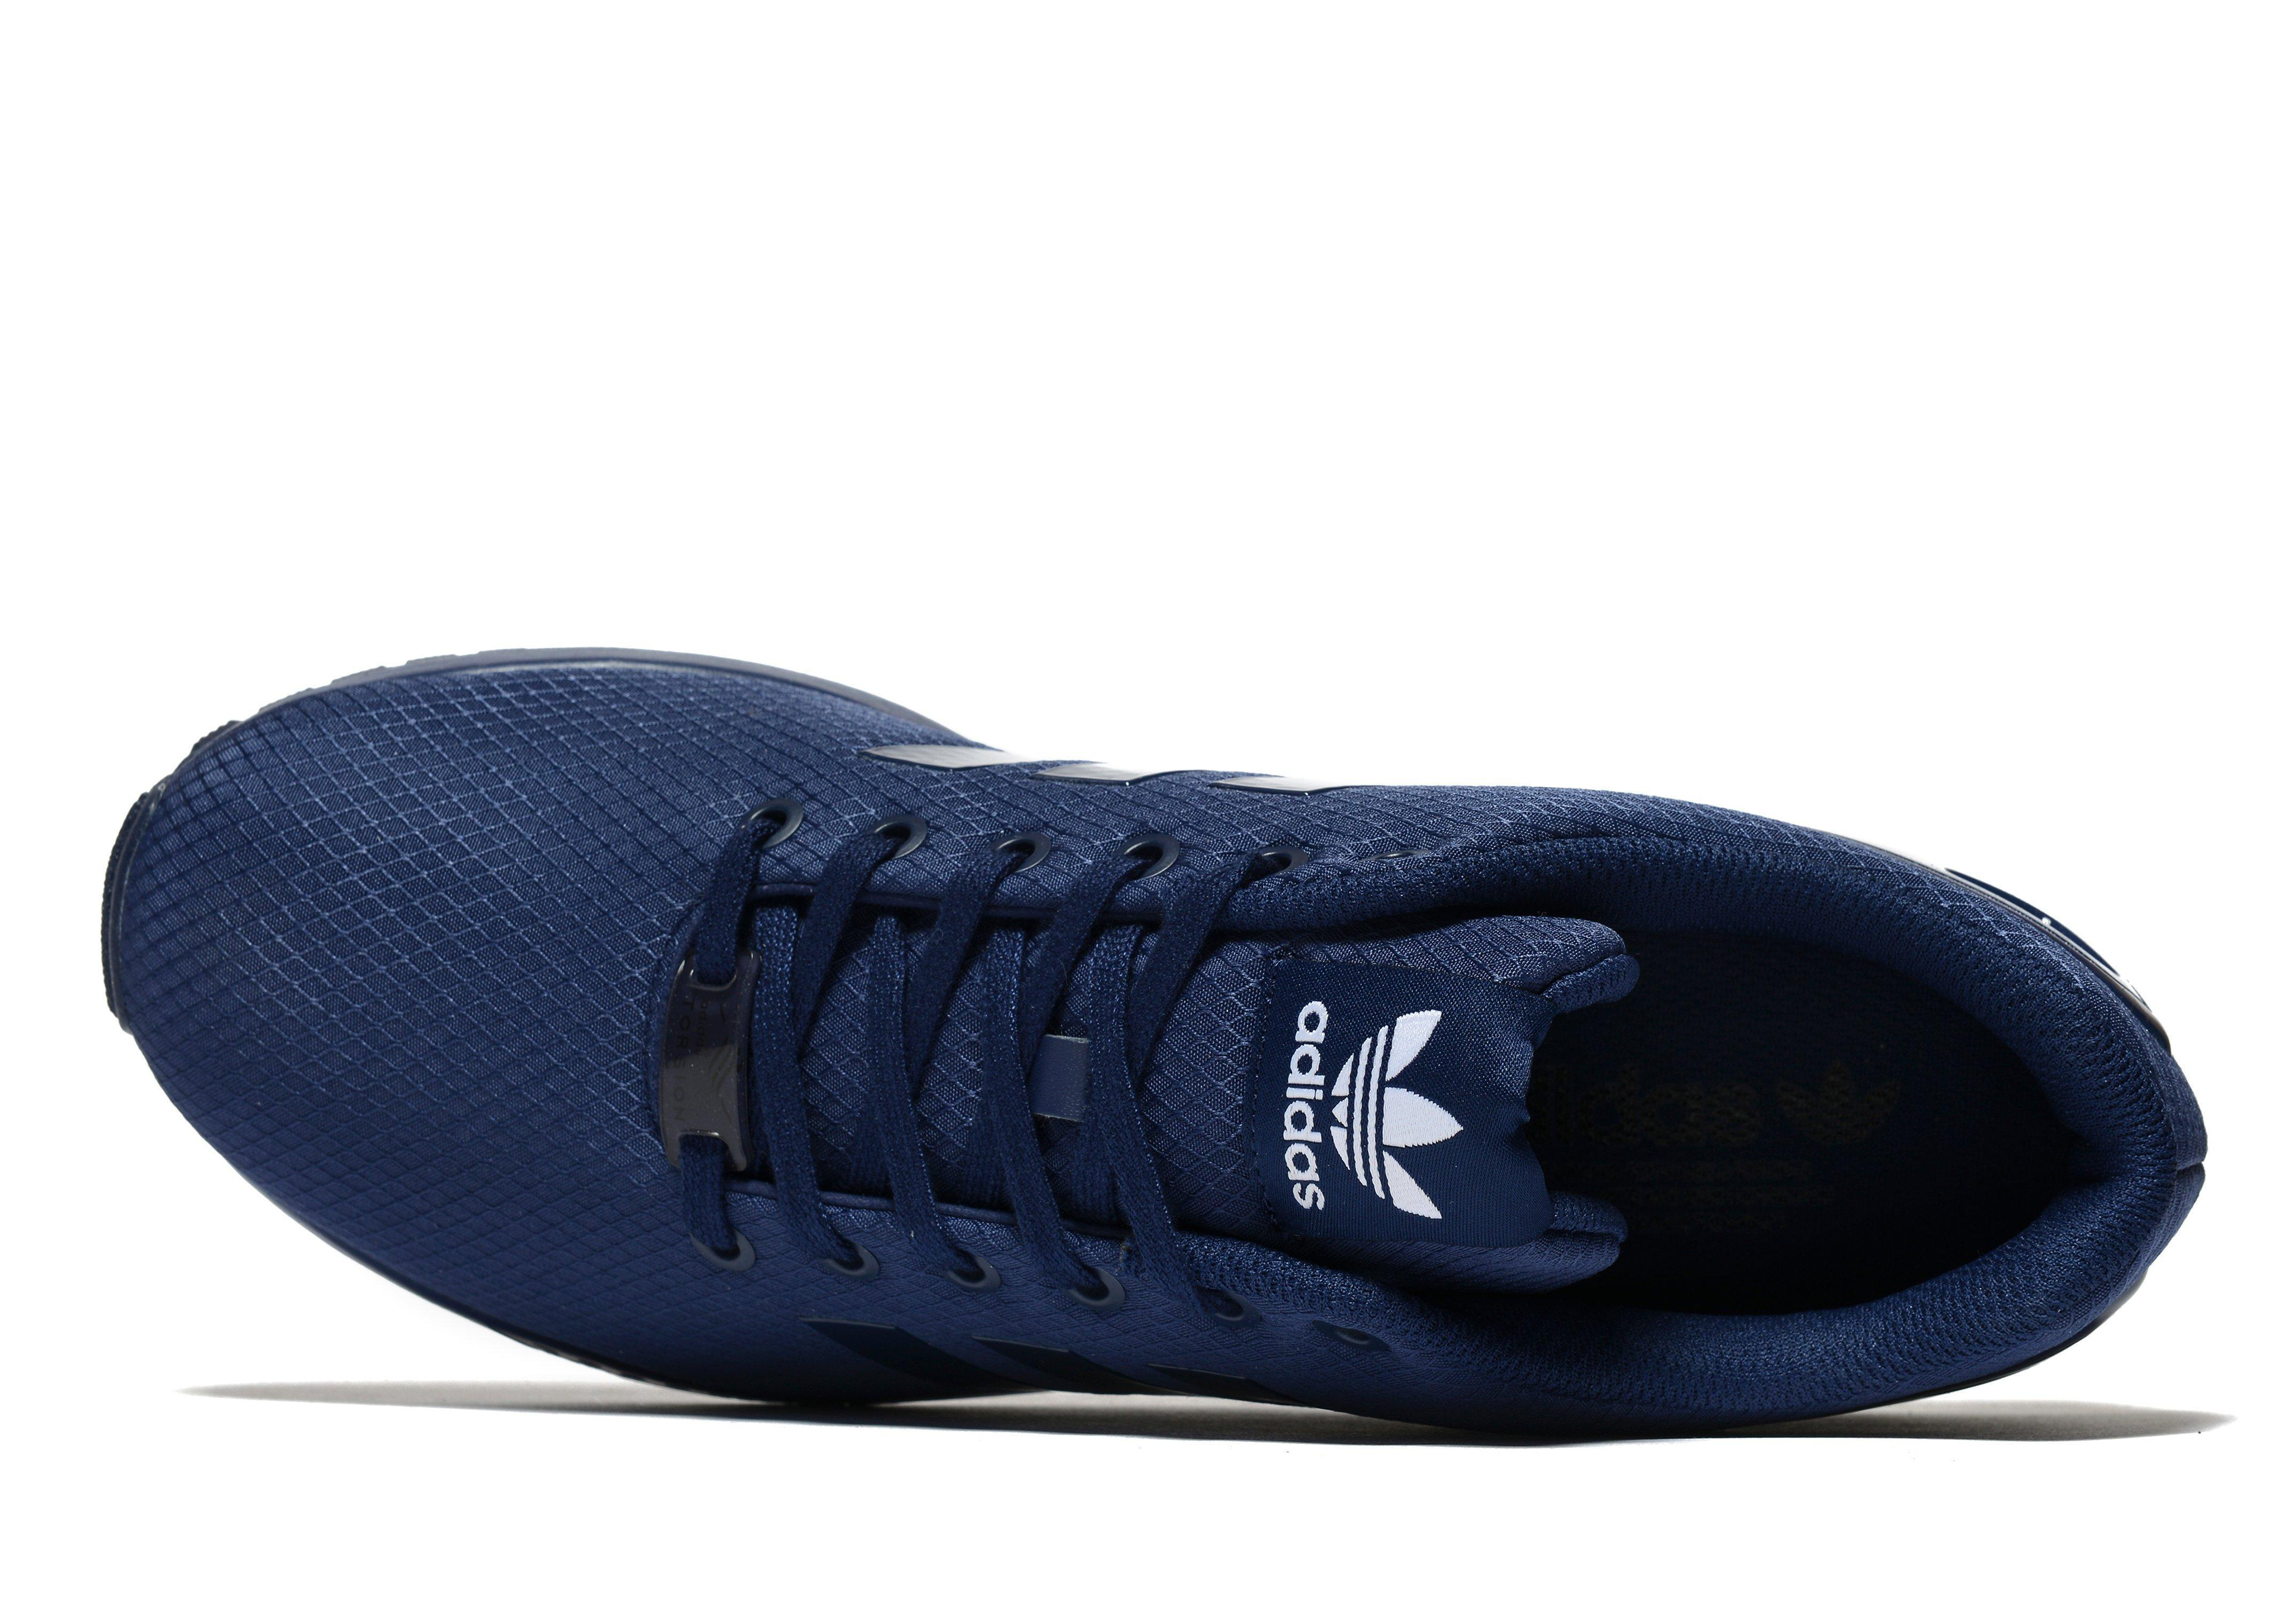 factory authentic f0692 173dc ... lyst adidas originals zx flux ripstop in blue for men